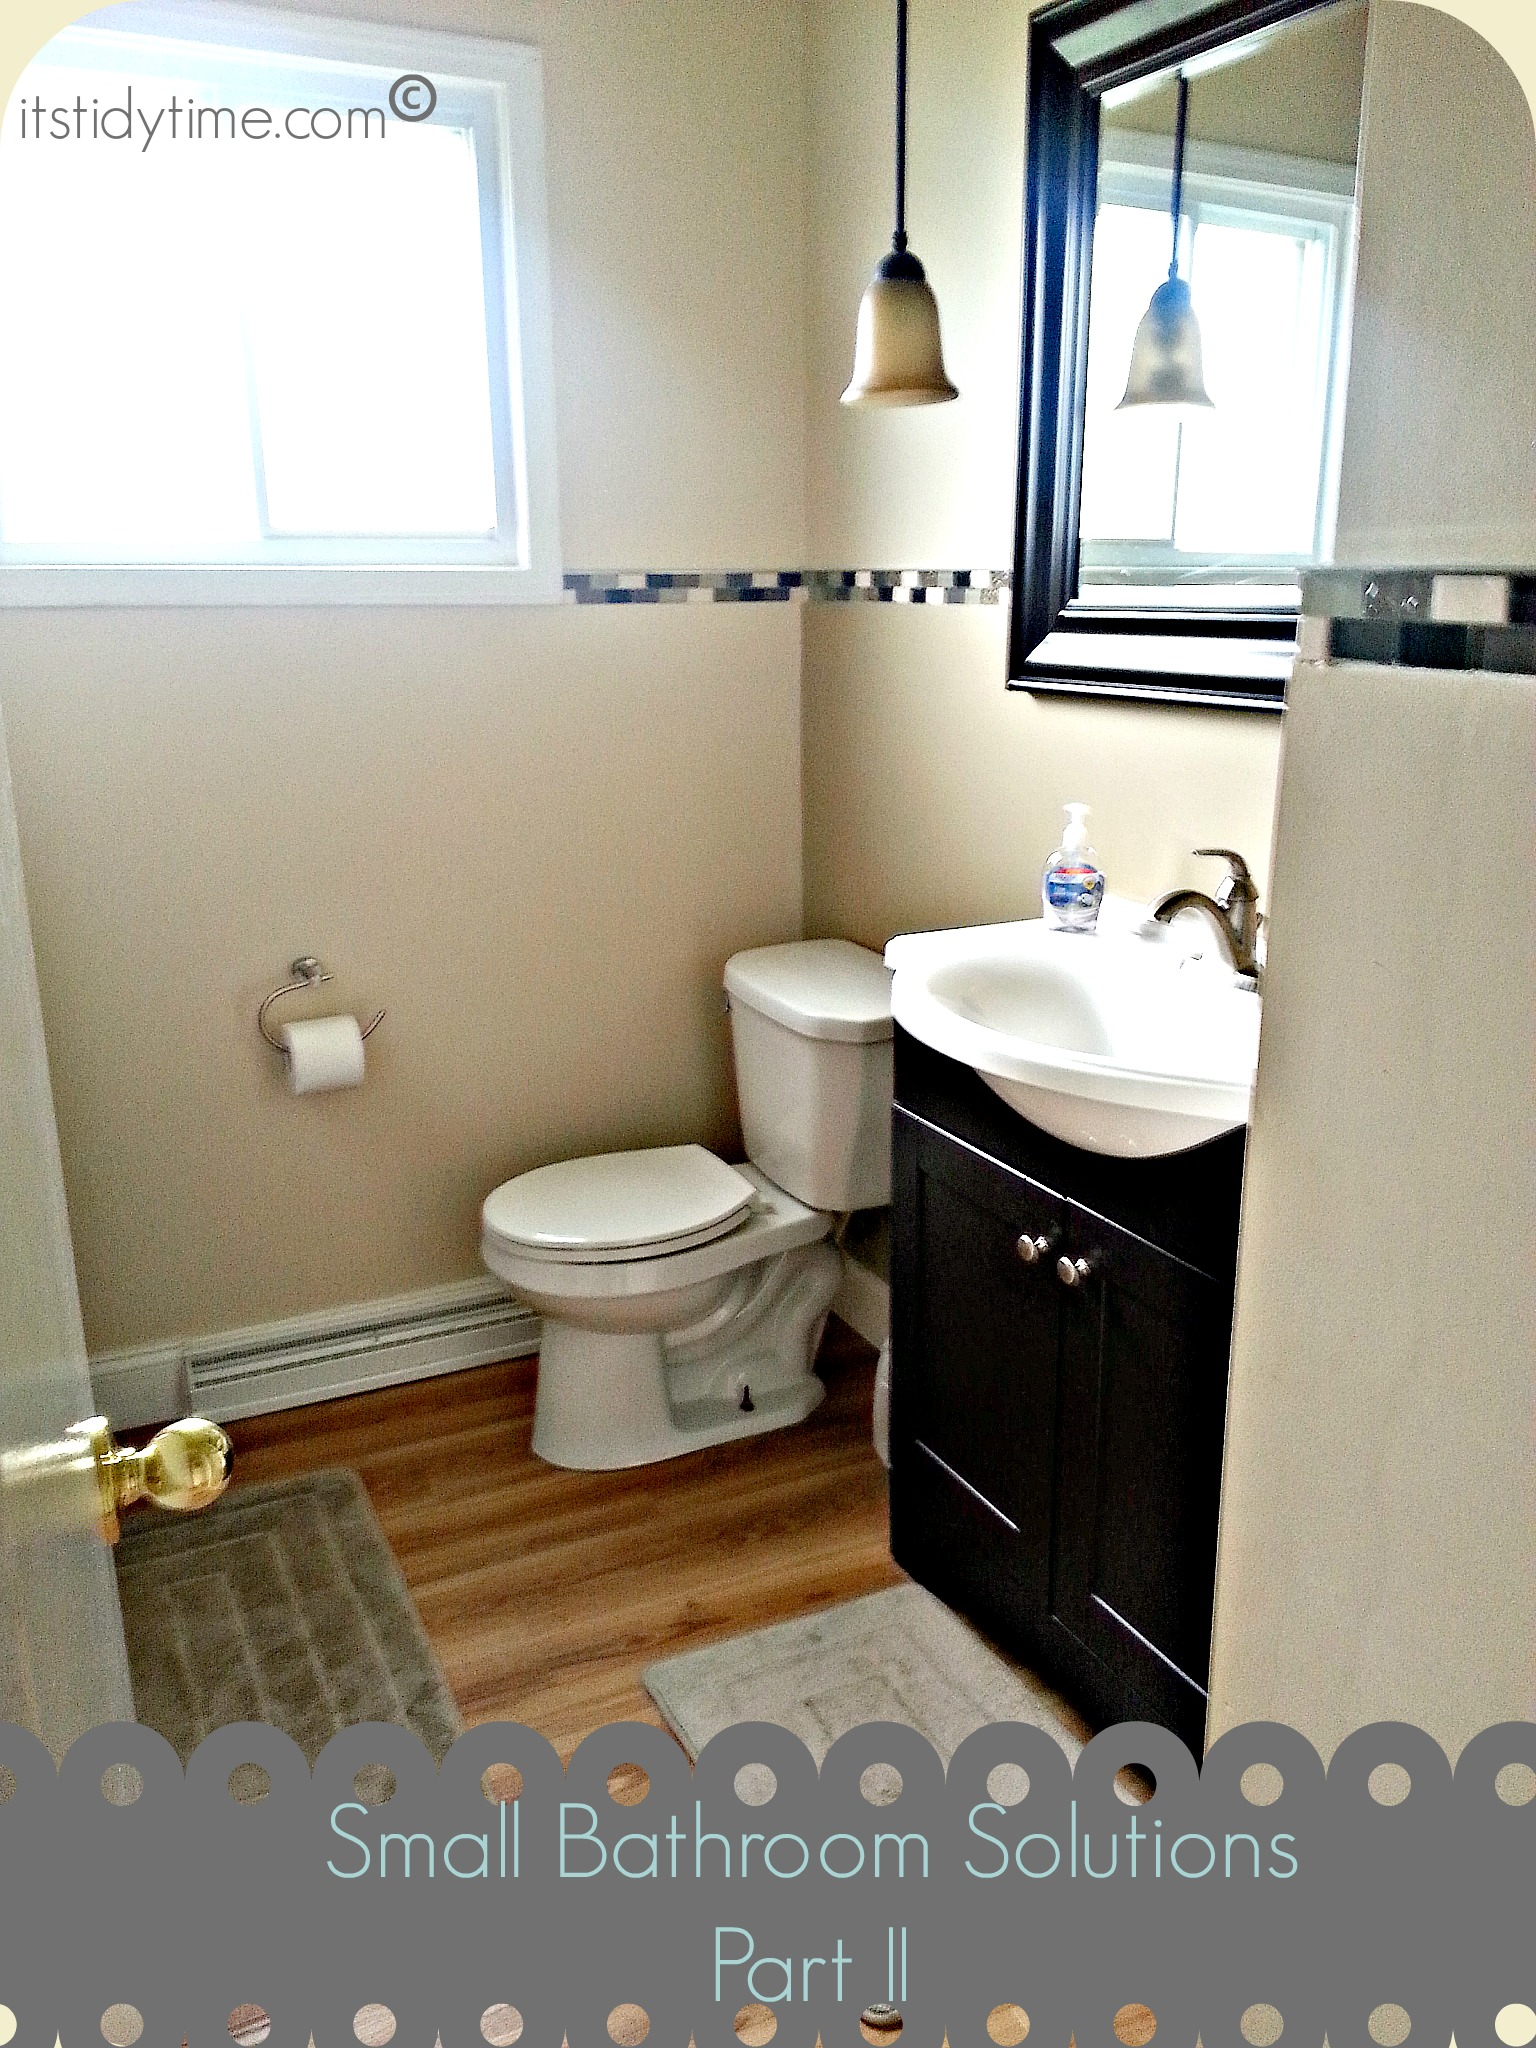 Small Bathroom Solutions Custom Of Small Bathroom Storage Solutions Image